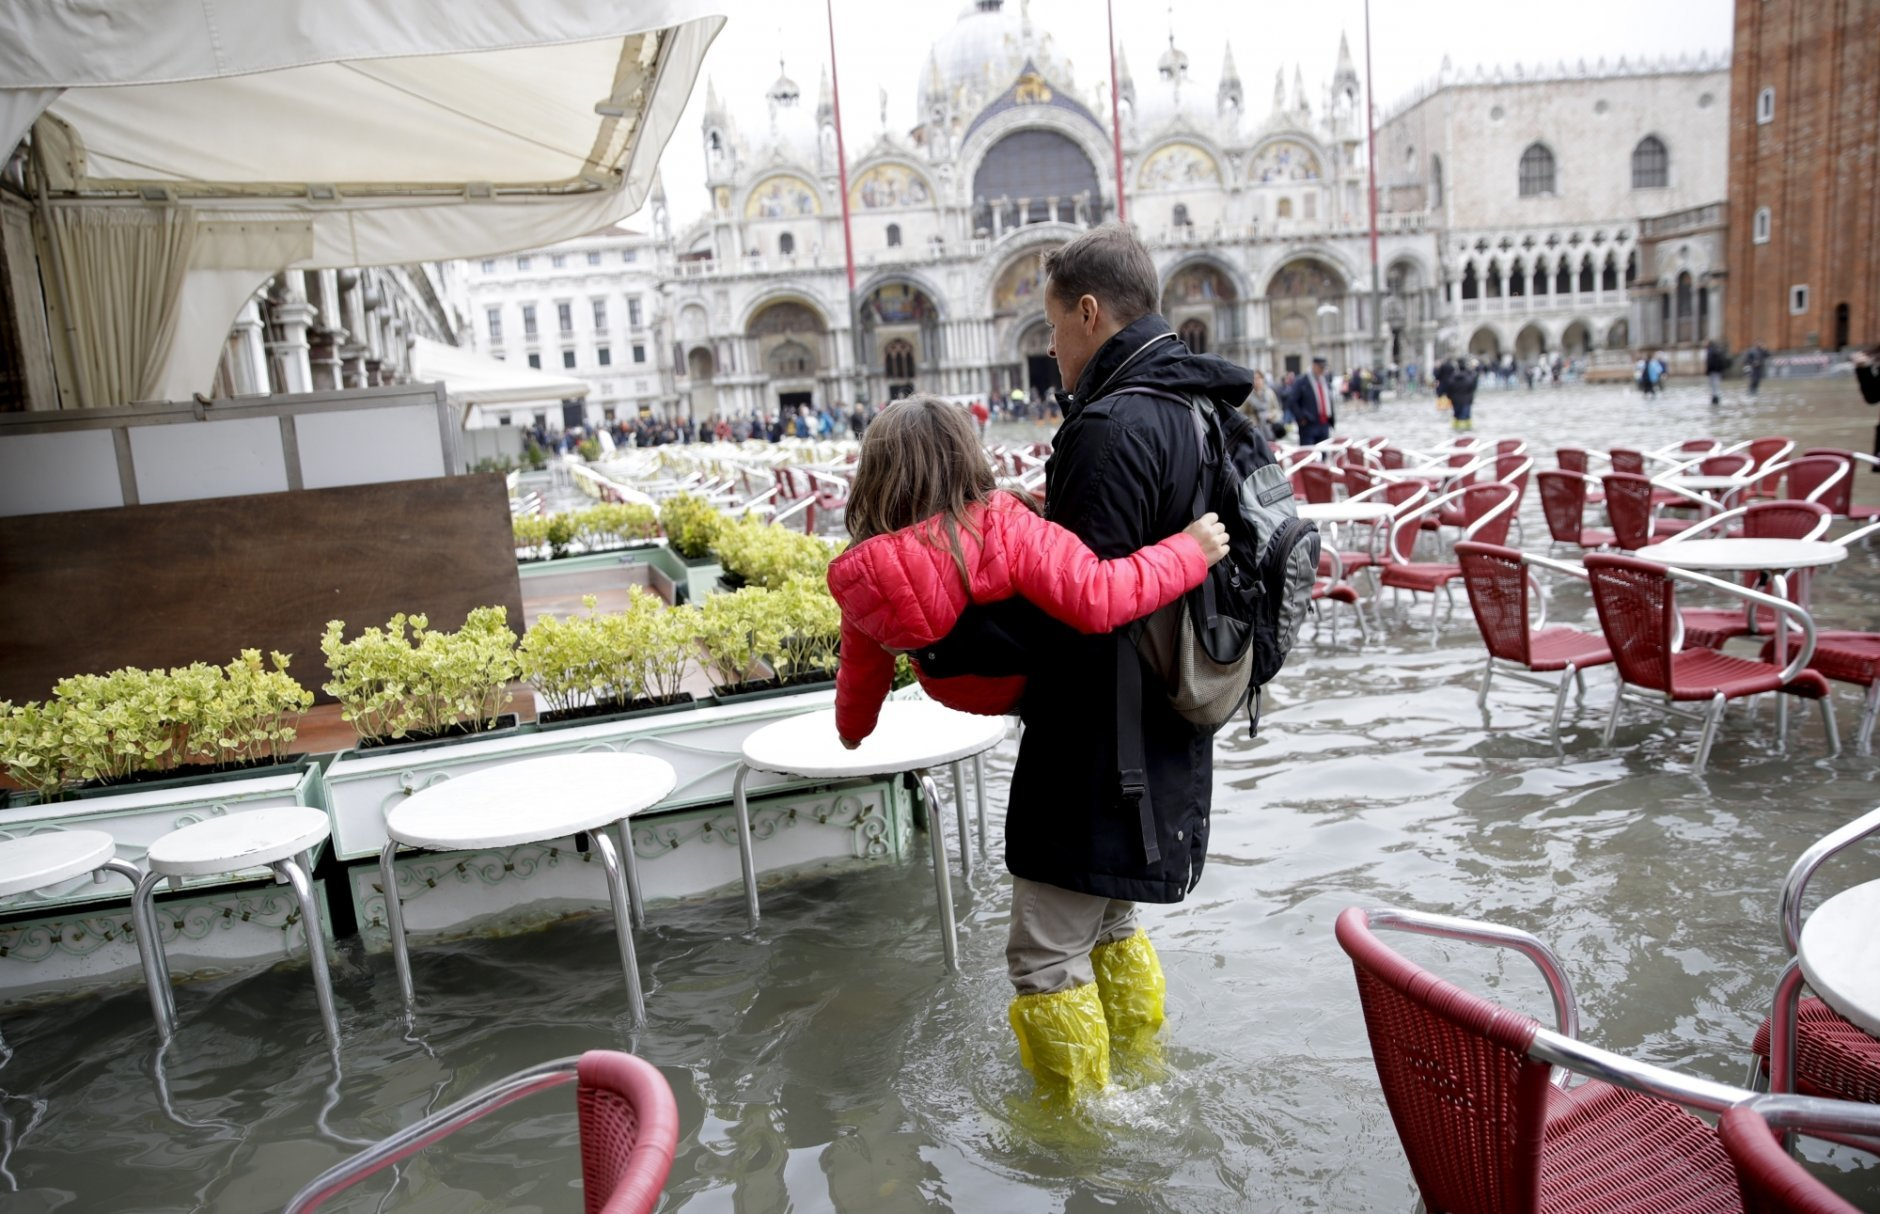 A man holds a girl as they walk in flooded St. Mark's Square in Venice, Italy, Thursday, Nov. 1, 2018 as rainstorms and strong winds have been battering the country. Two people were killed when a falling tree crushed their car in the mountainous countryside in northwestern Italy, as rainstorms and strong winds continued to pummel much of the country. (AP Photo/Luca Bruno)